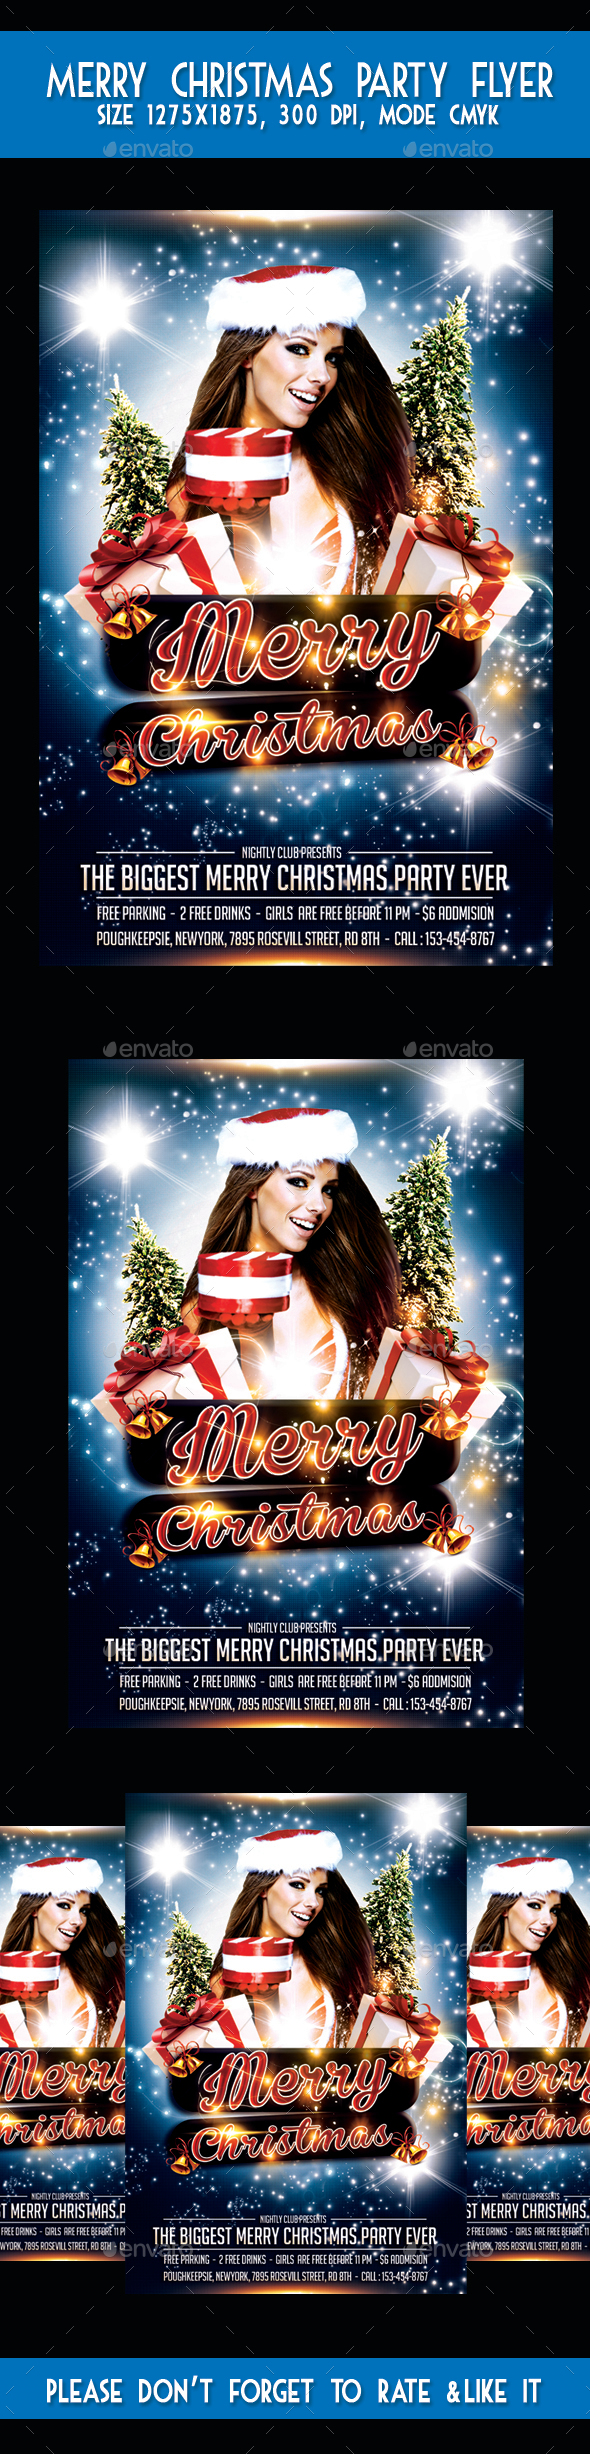 Merry Christmas Party Flyer - Flyers Print Templates